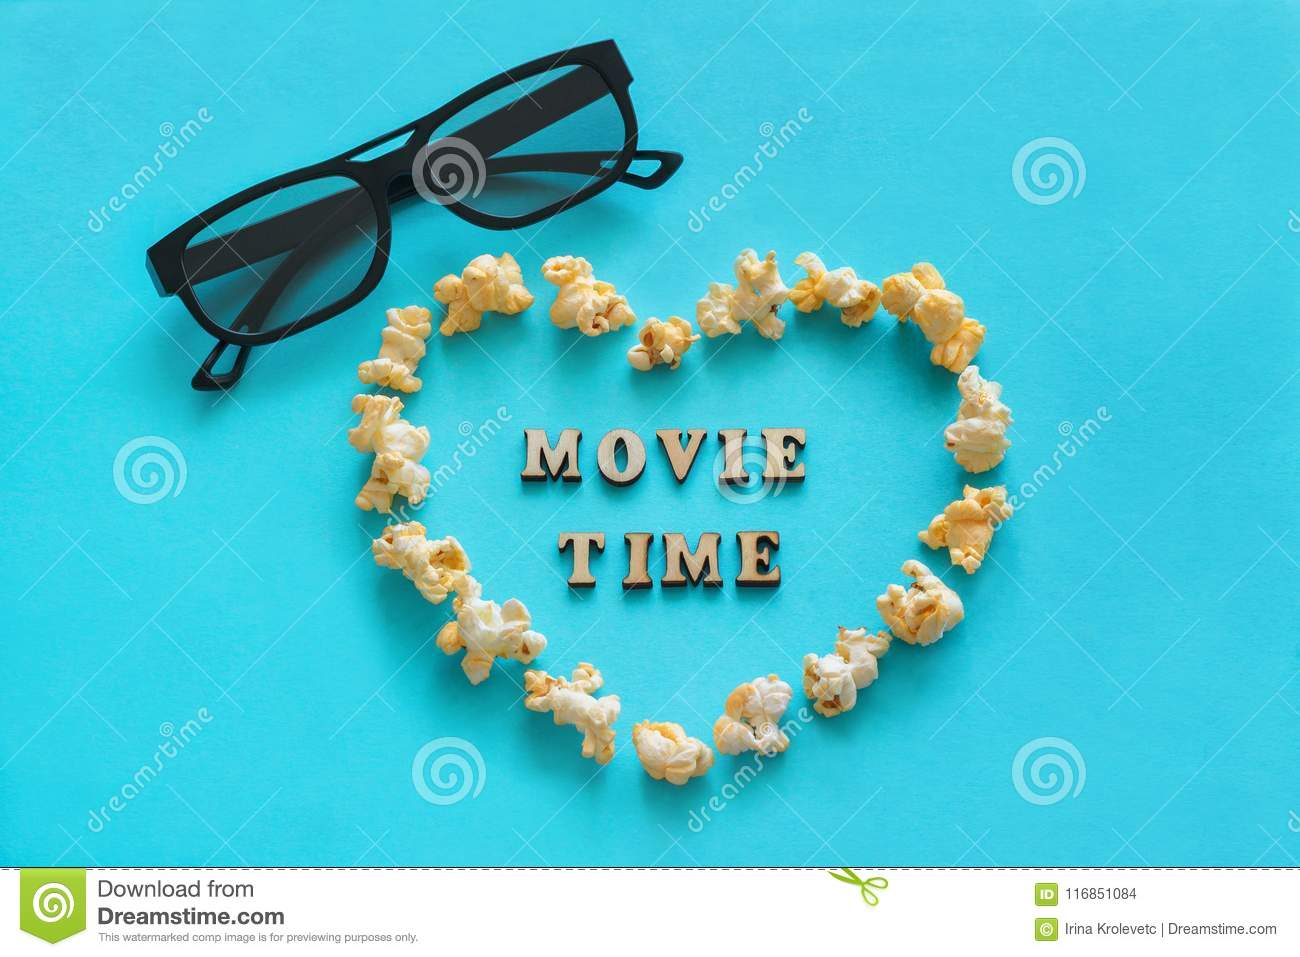 Popcorn in shape heart, 3D glasses, the text